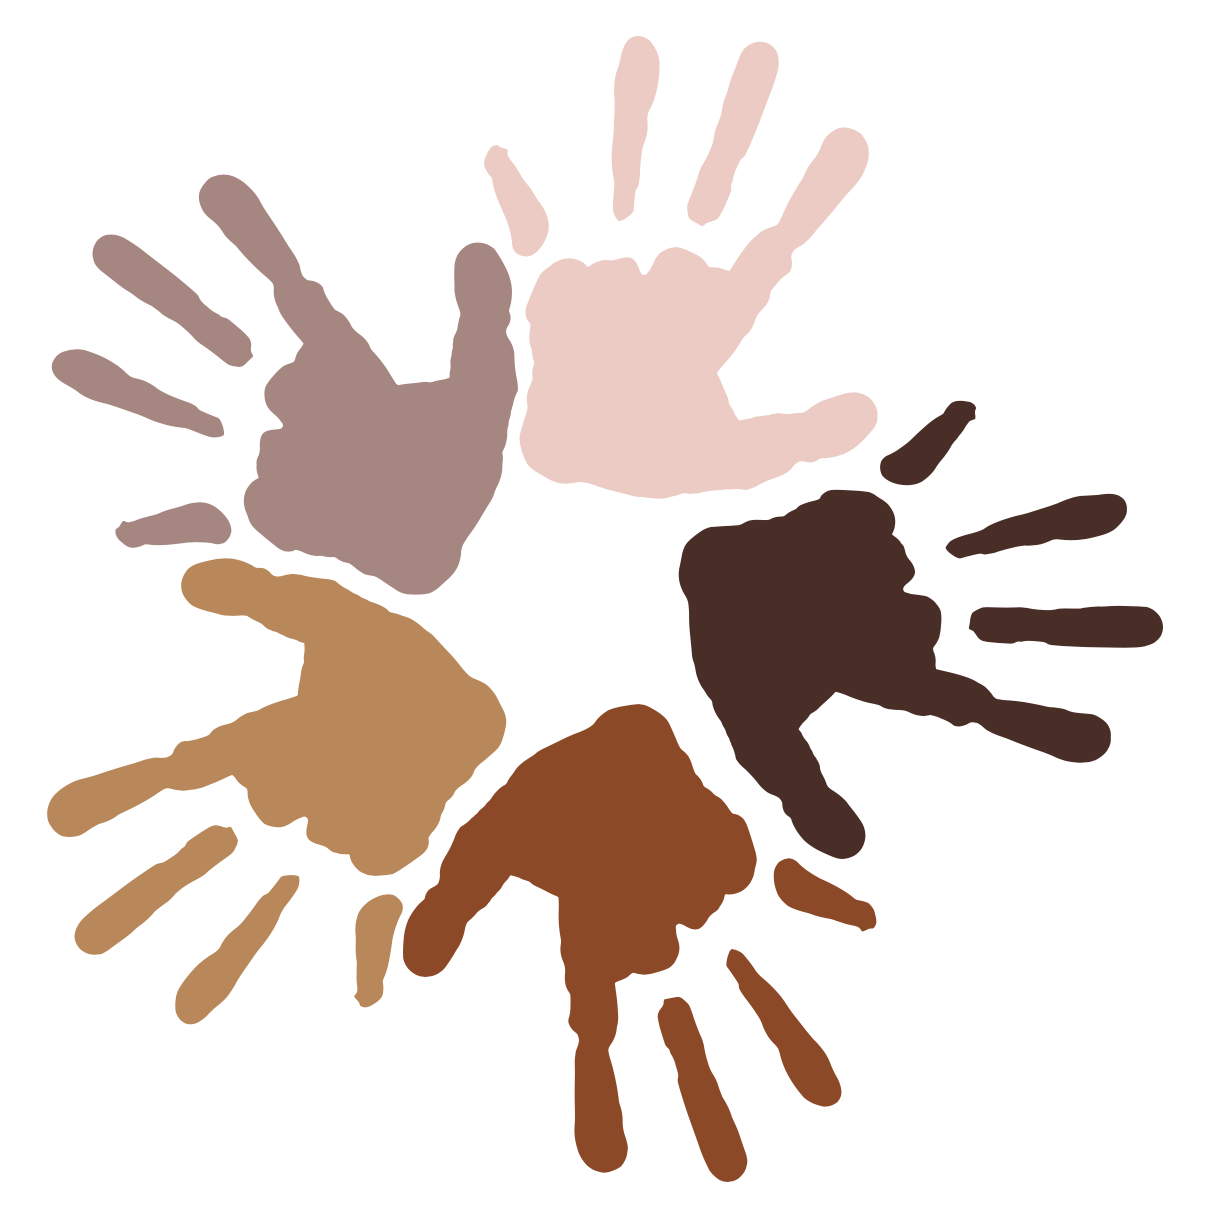 five hand prints all different skin tones